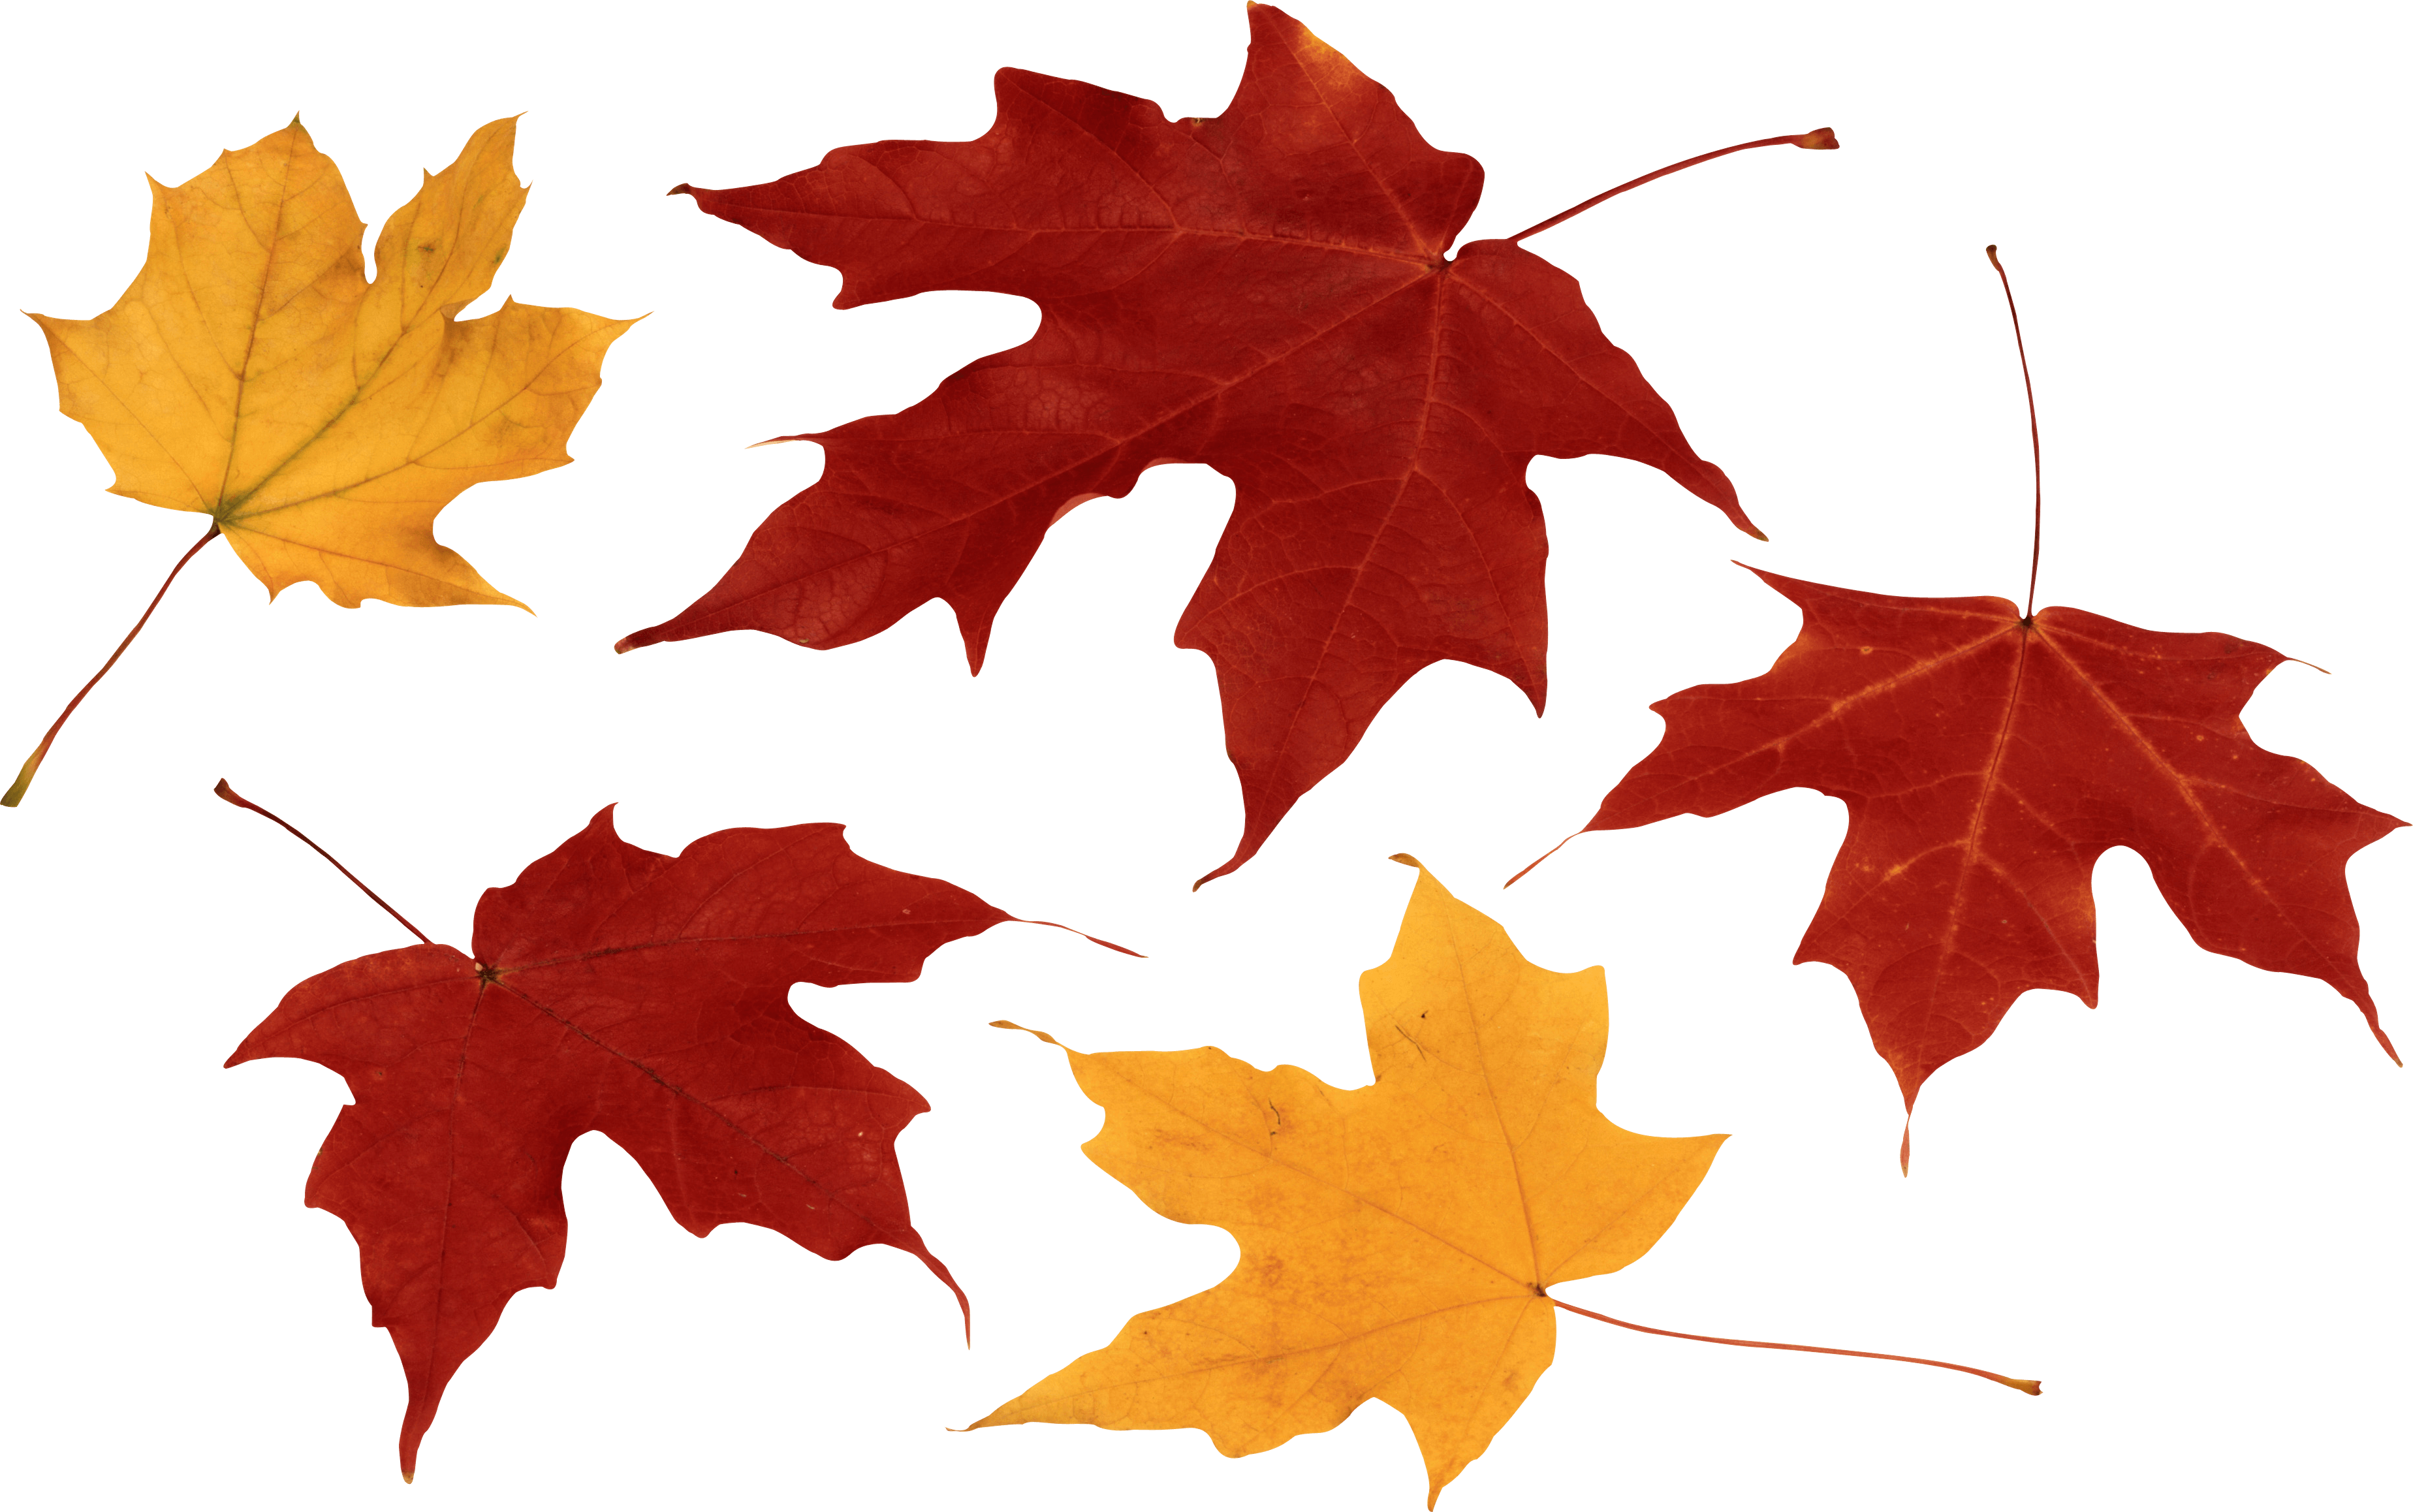 Autumn Leaves PNG Images Transparent Free Download.